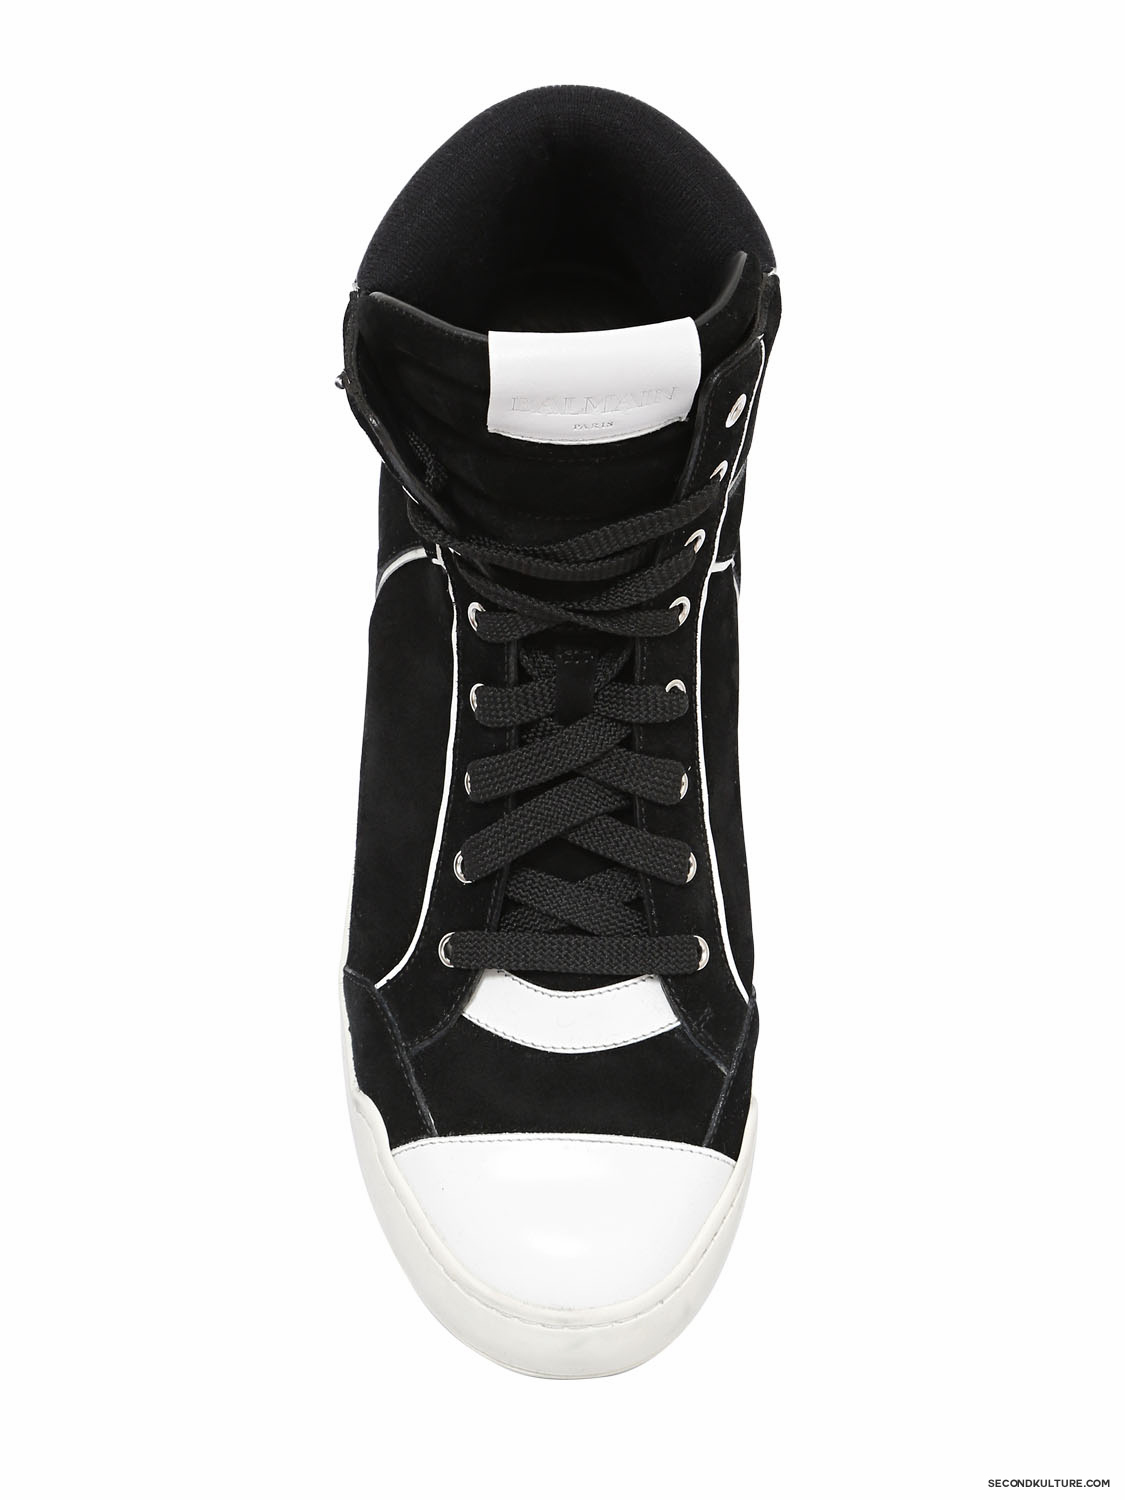 Balmain-Black-and-White-Suede-High-Top-Sneakers-Fall-Winter-2015-2